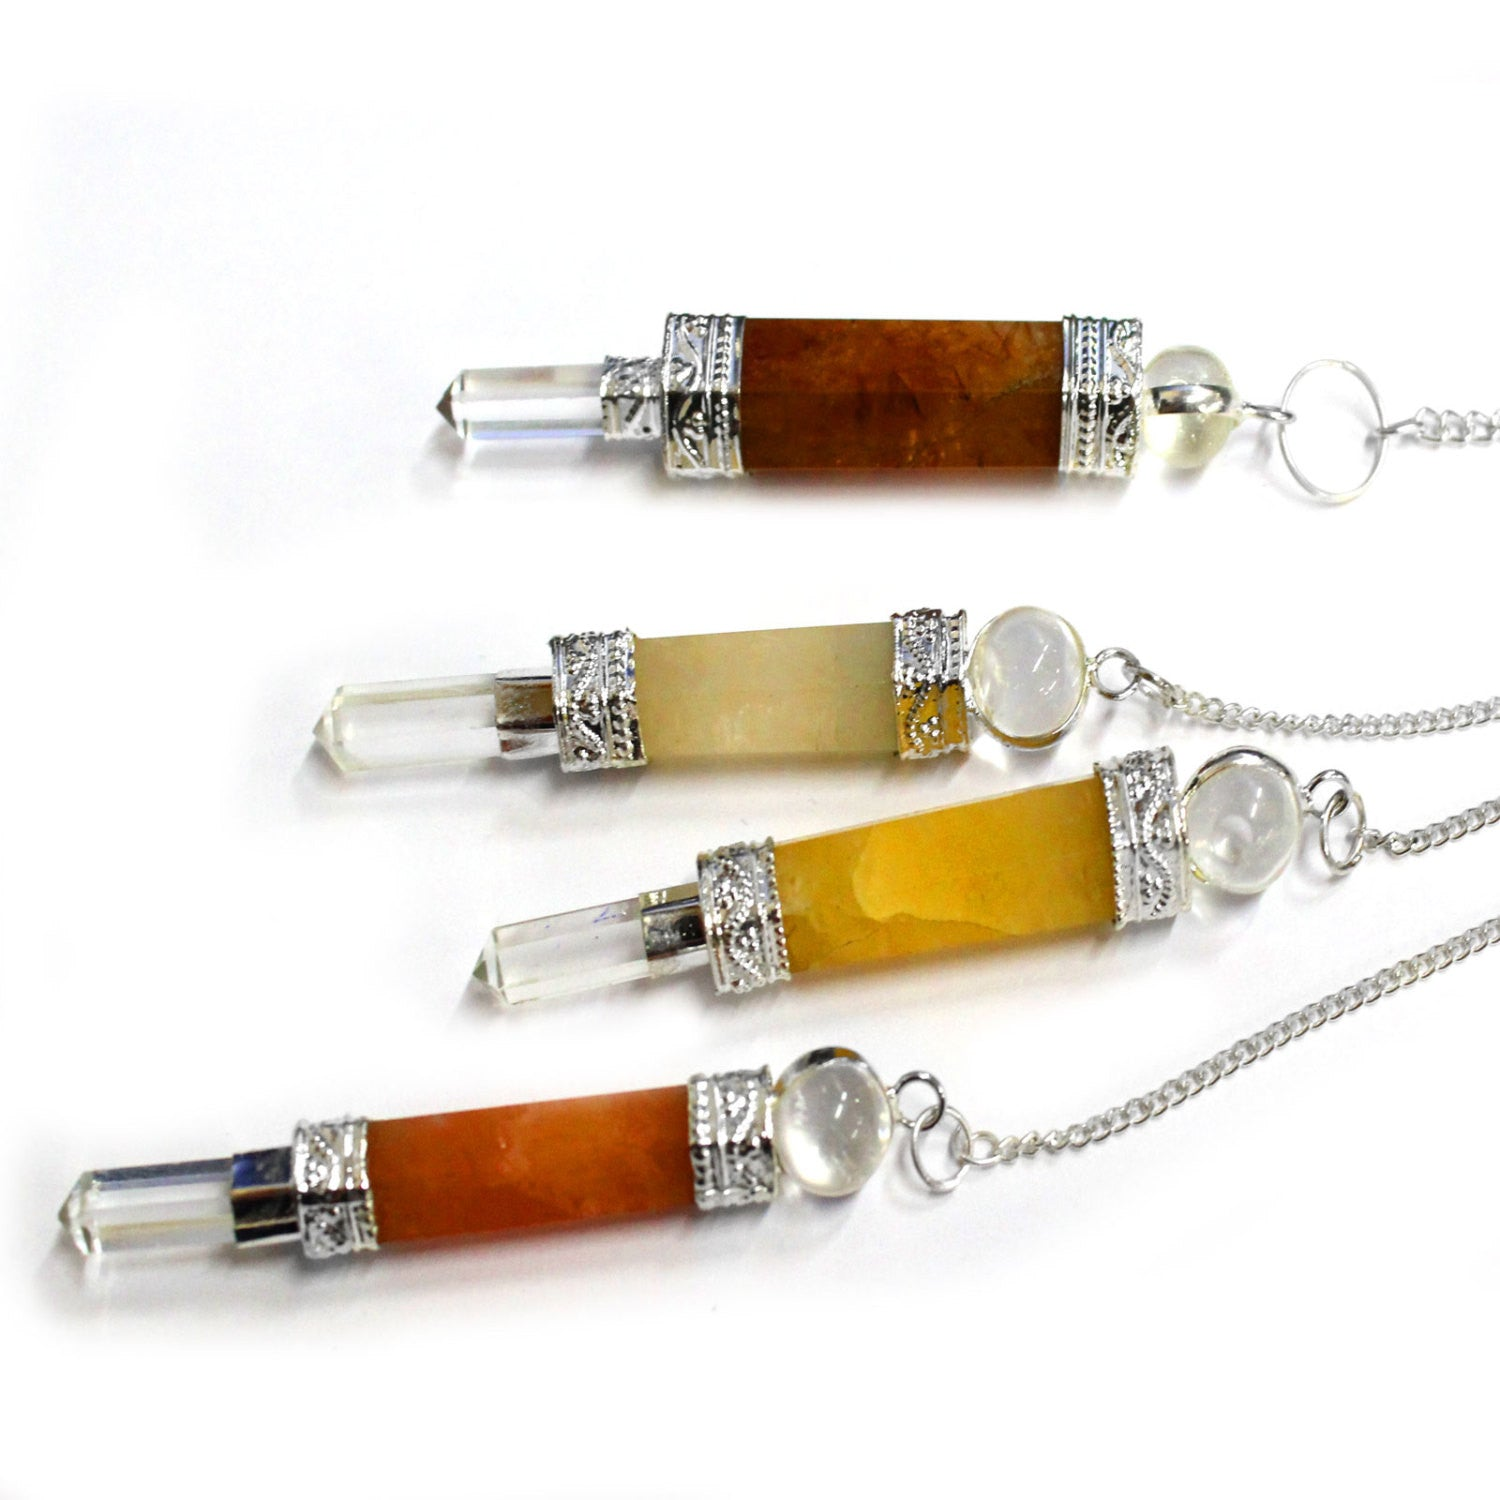 Gold Quartz Point Pendulum with Silver Tone Crystal Quartz Embedded Bail and Chain  - Gold Quartz Pendulum S54B15